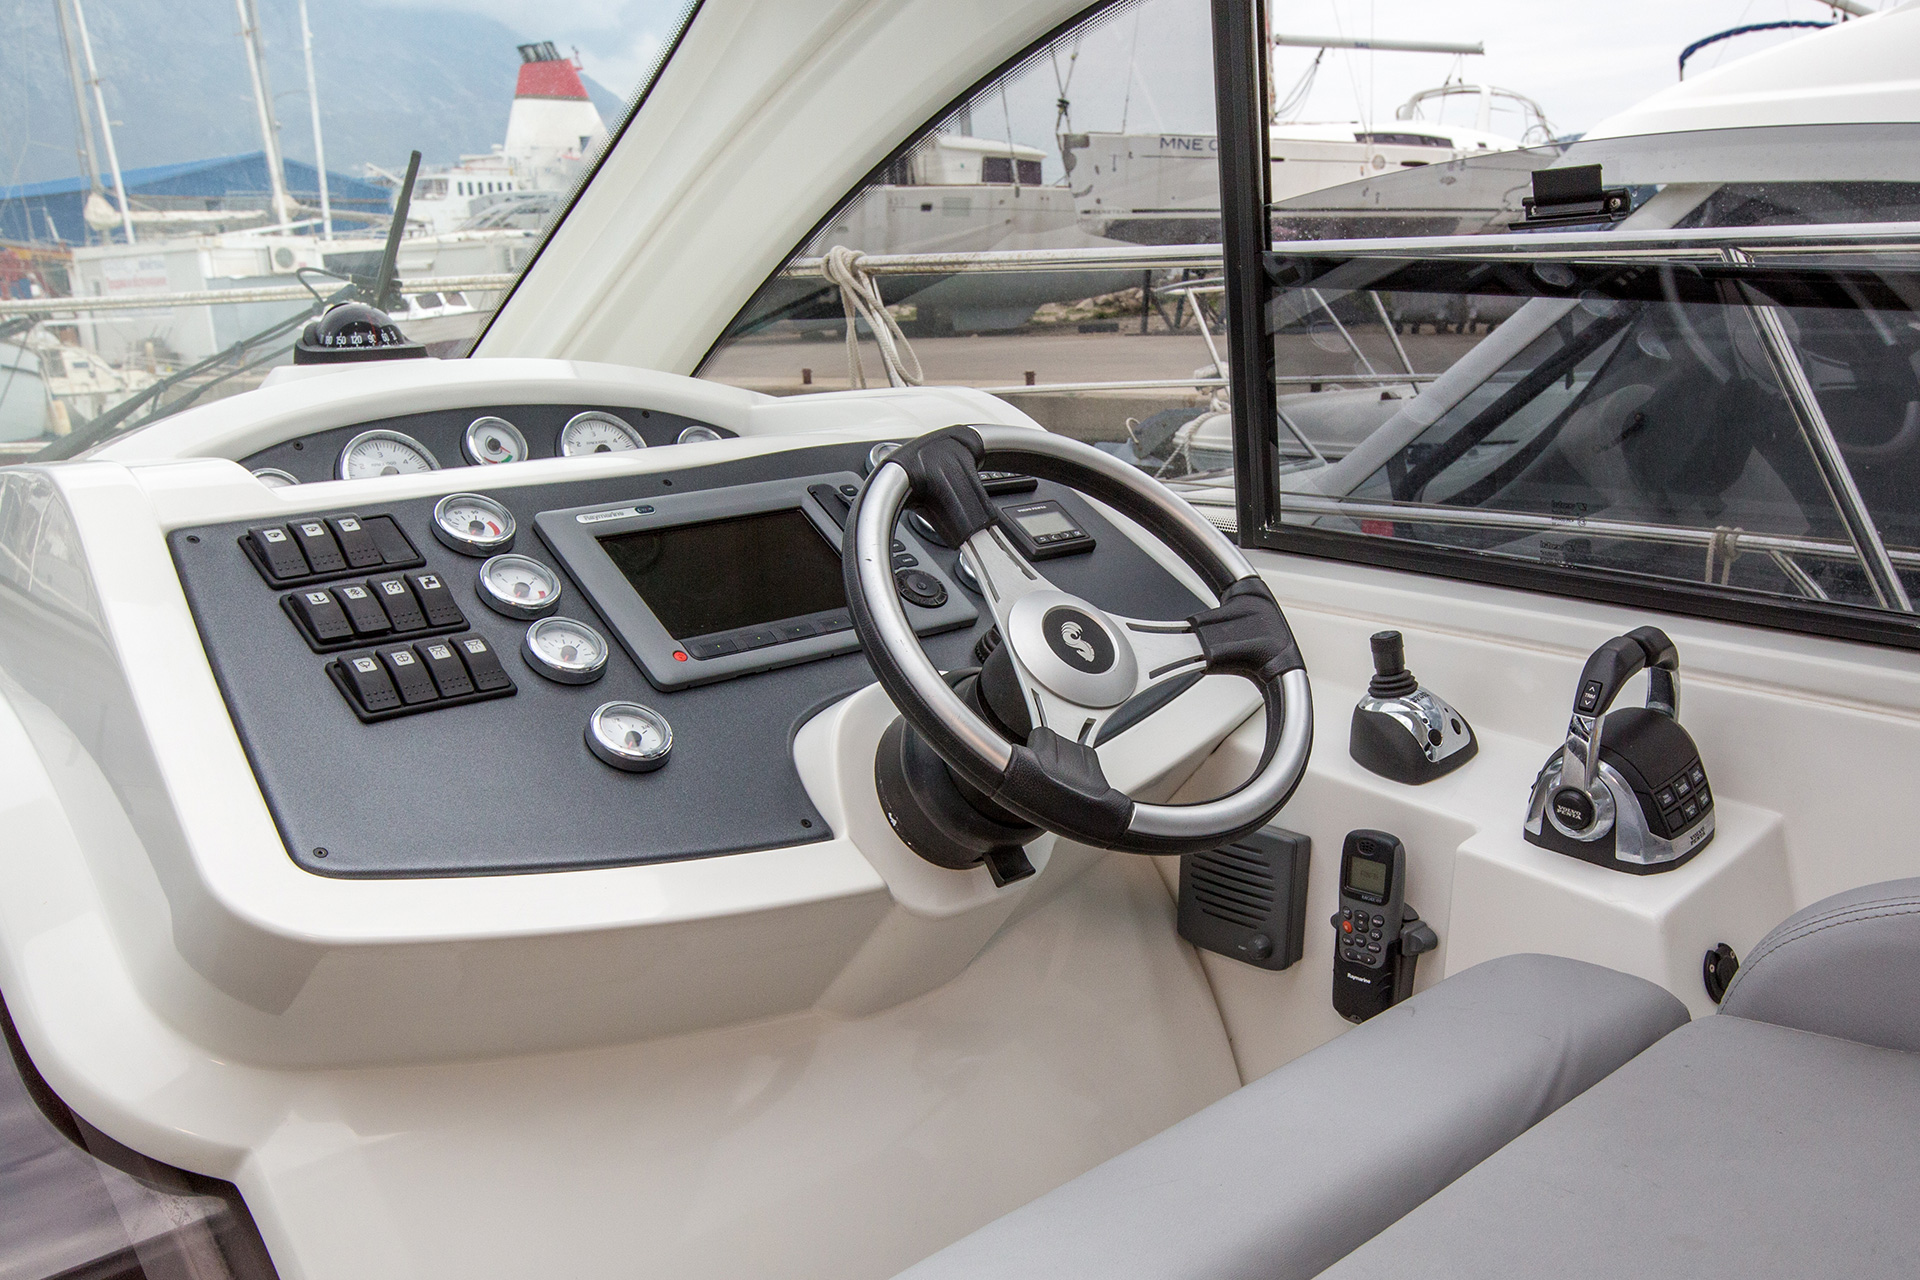 Motorboats available for charter from SimpleSail